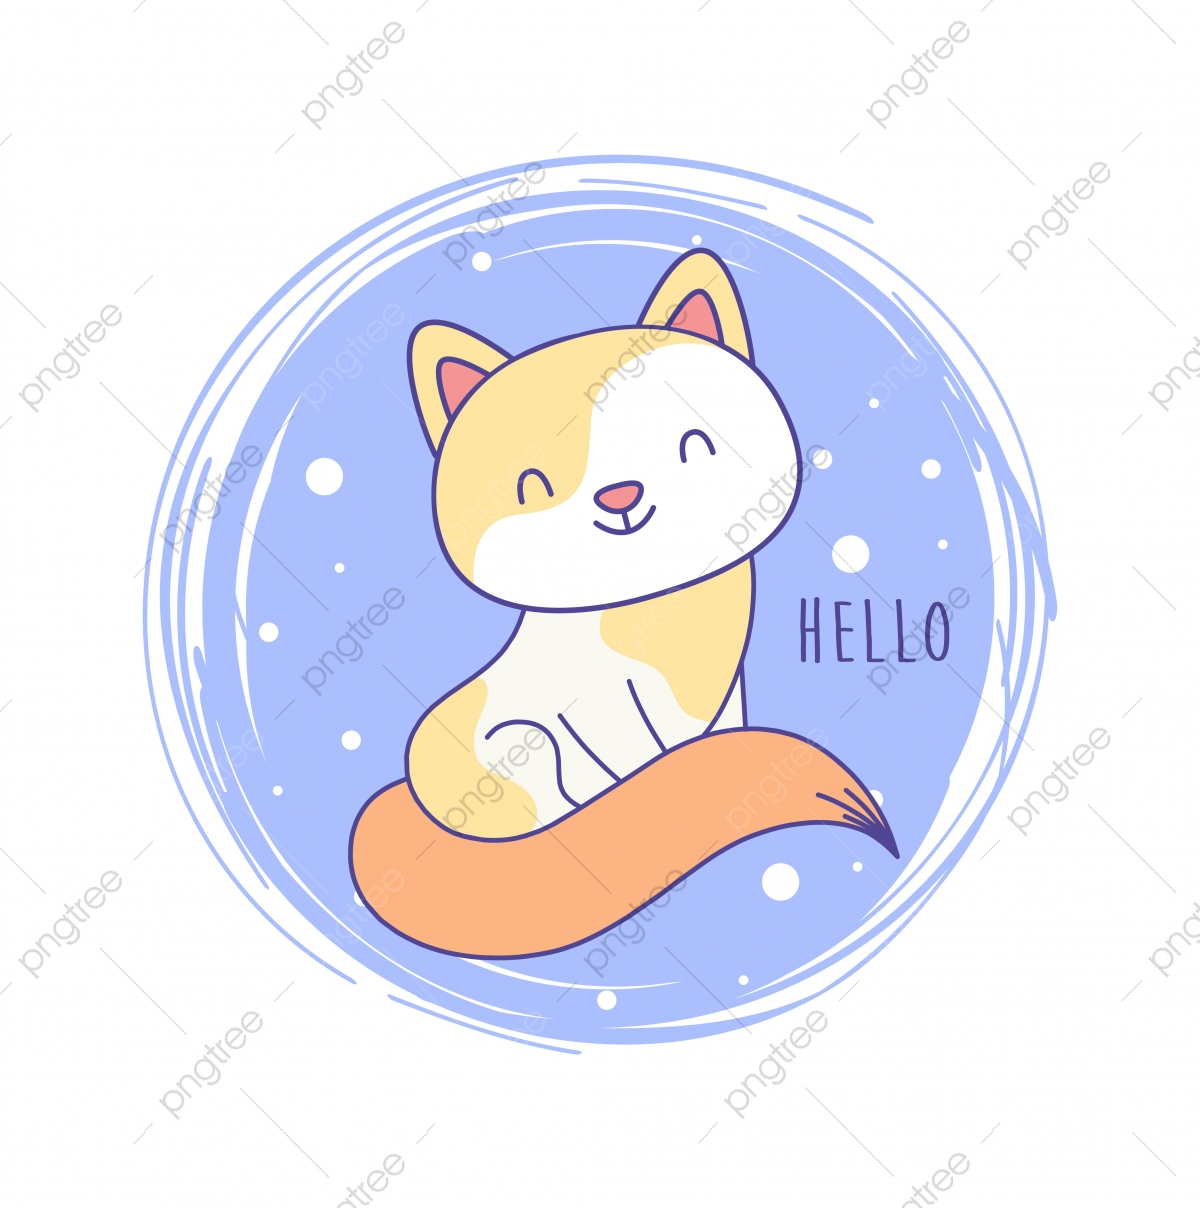 Cute Cat Cartoon Hand Draw Vector Cute Drawing Png And Vector With Transparent Background For Free Download